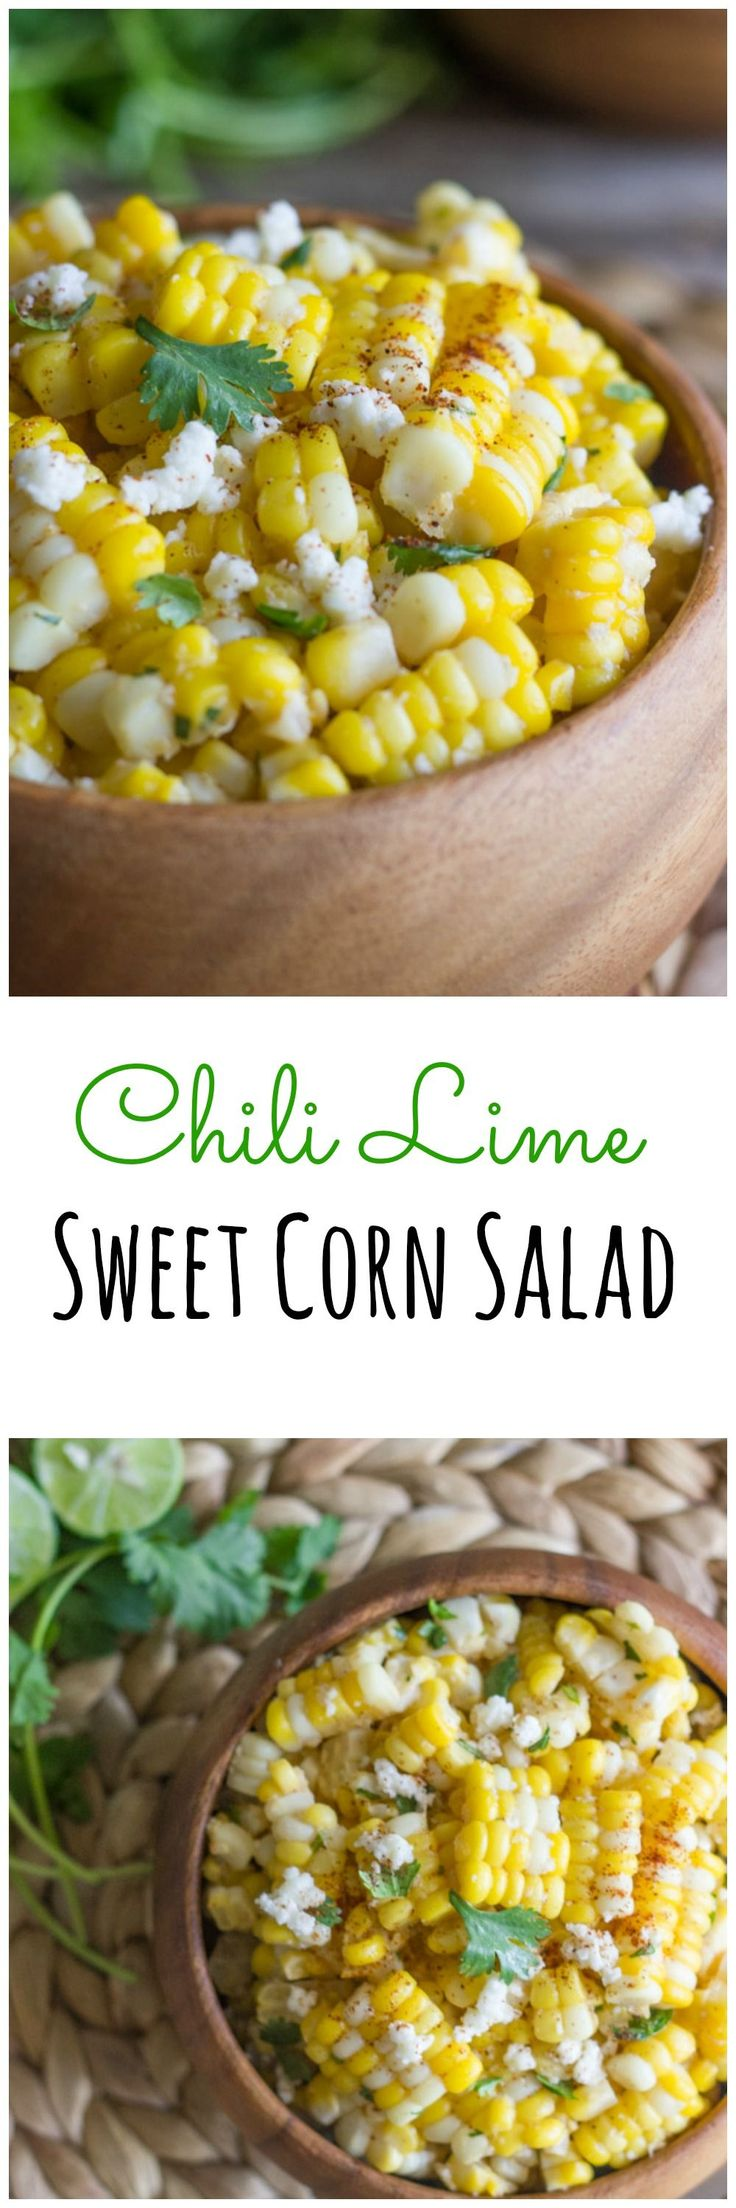 Chili Lime Sweet Corn Salad recipe | Tablescapes | Entertaining